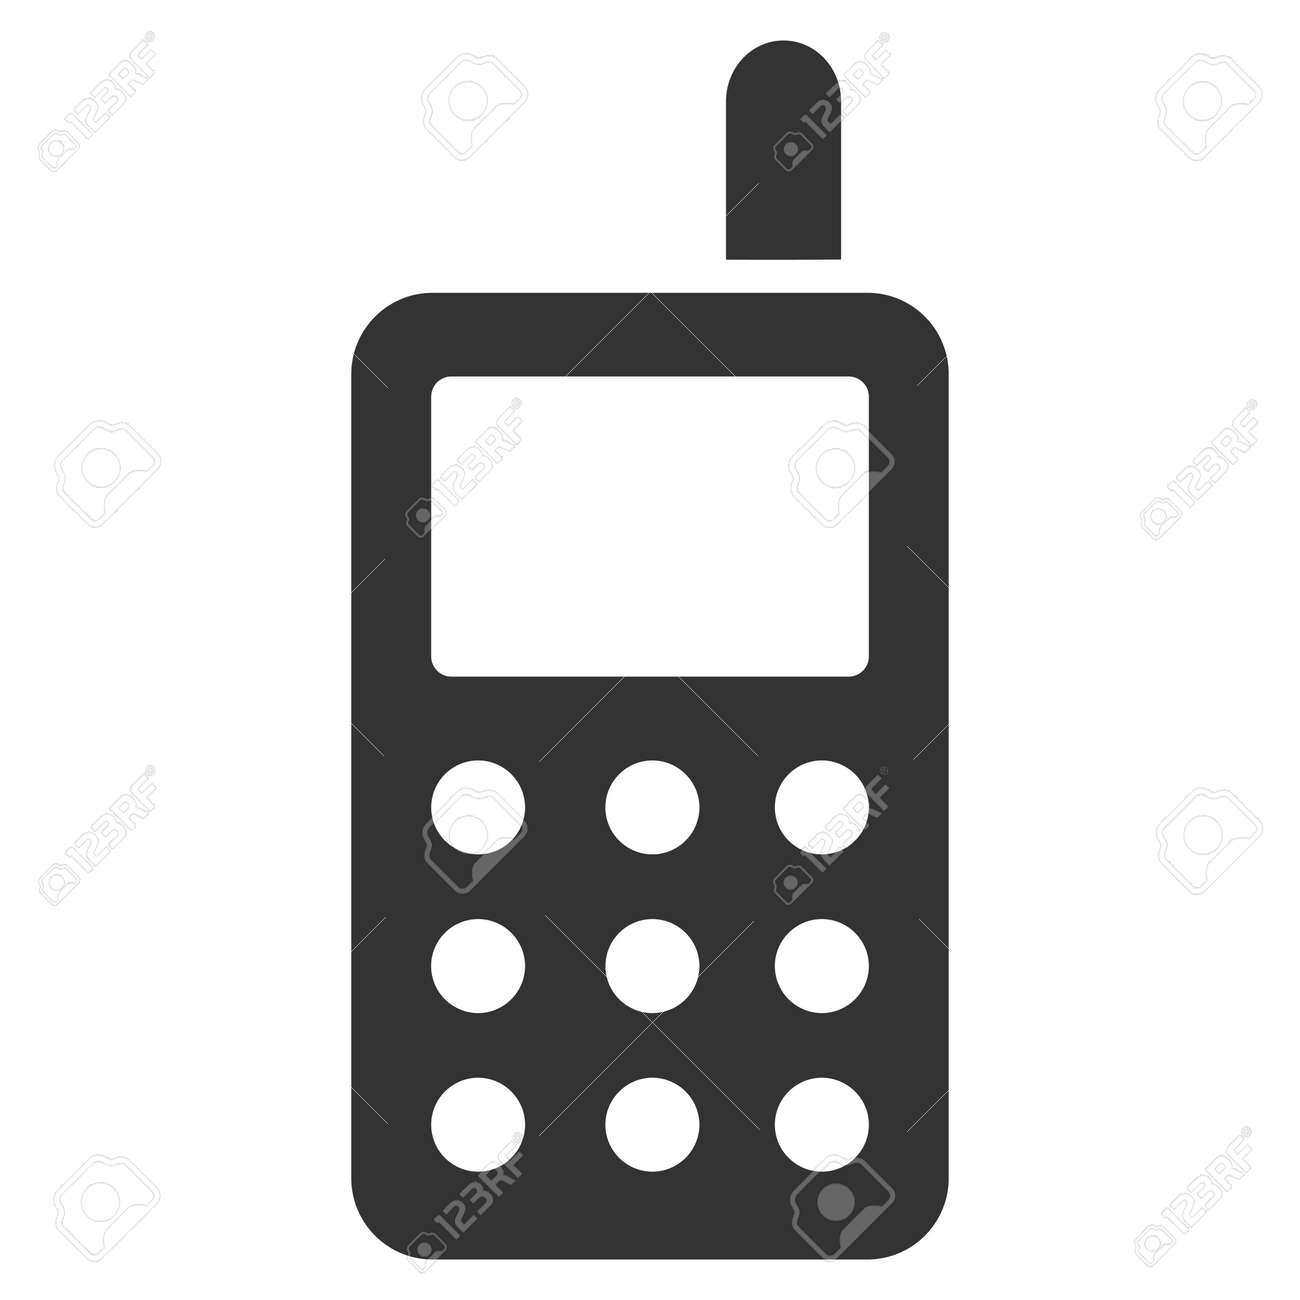 cell phone vector icon flat gray symbol pictogram is isolated rh 123rf com cell phone vector free cell phone vector logo